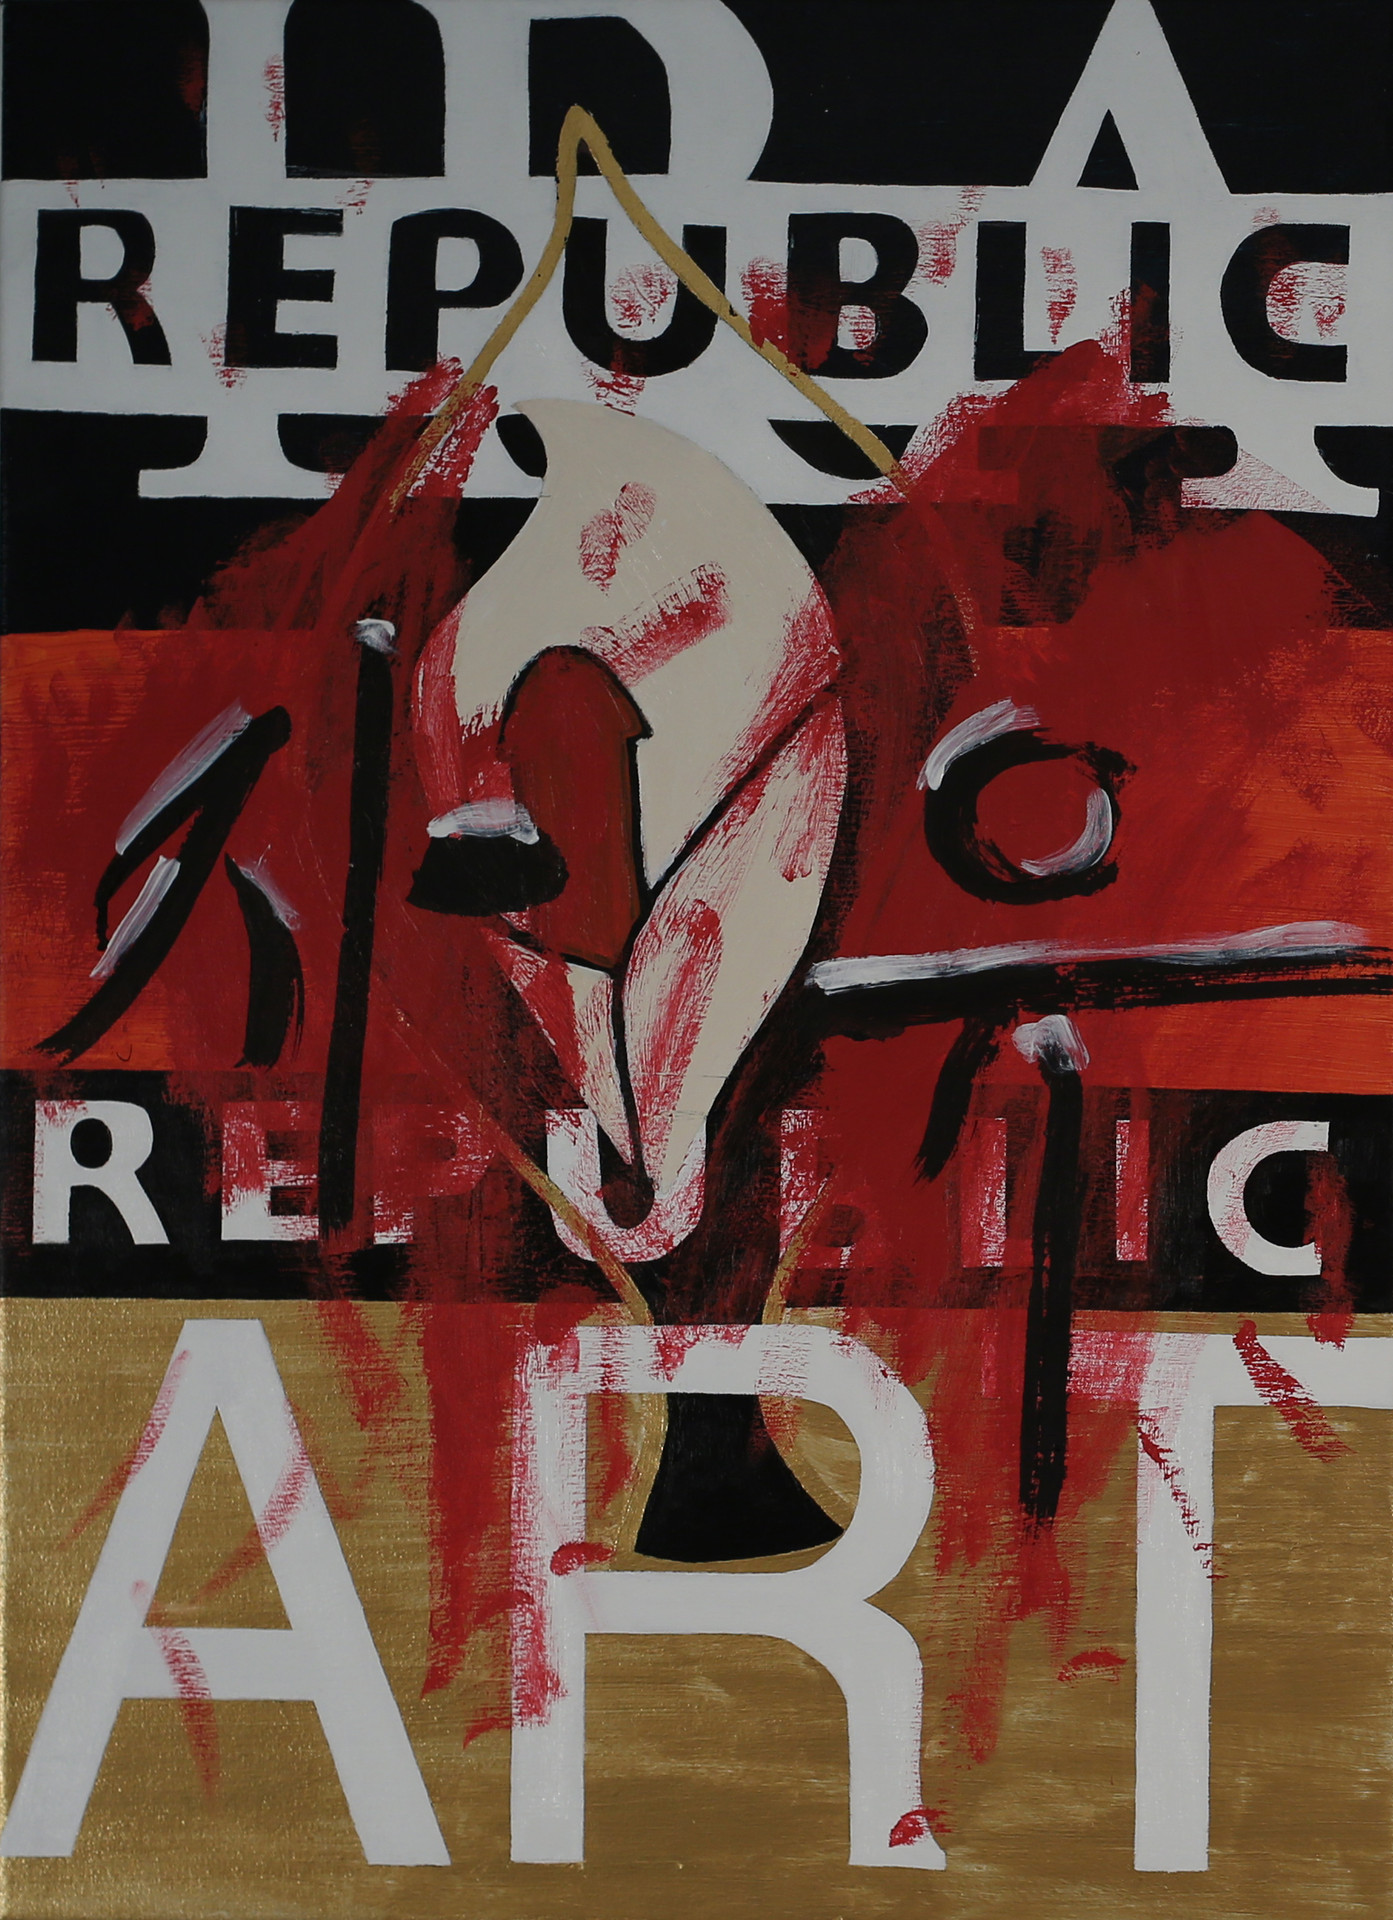 REPUBLIC, 30x22 inches, acrylic on canvas, 2014